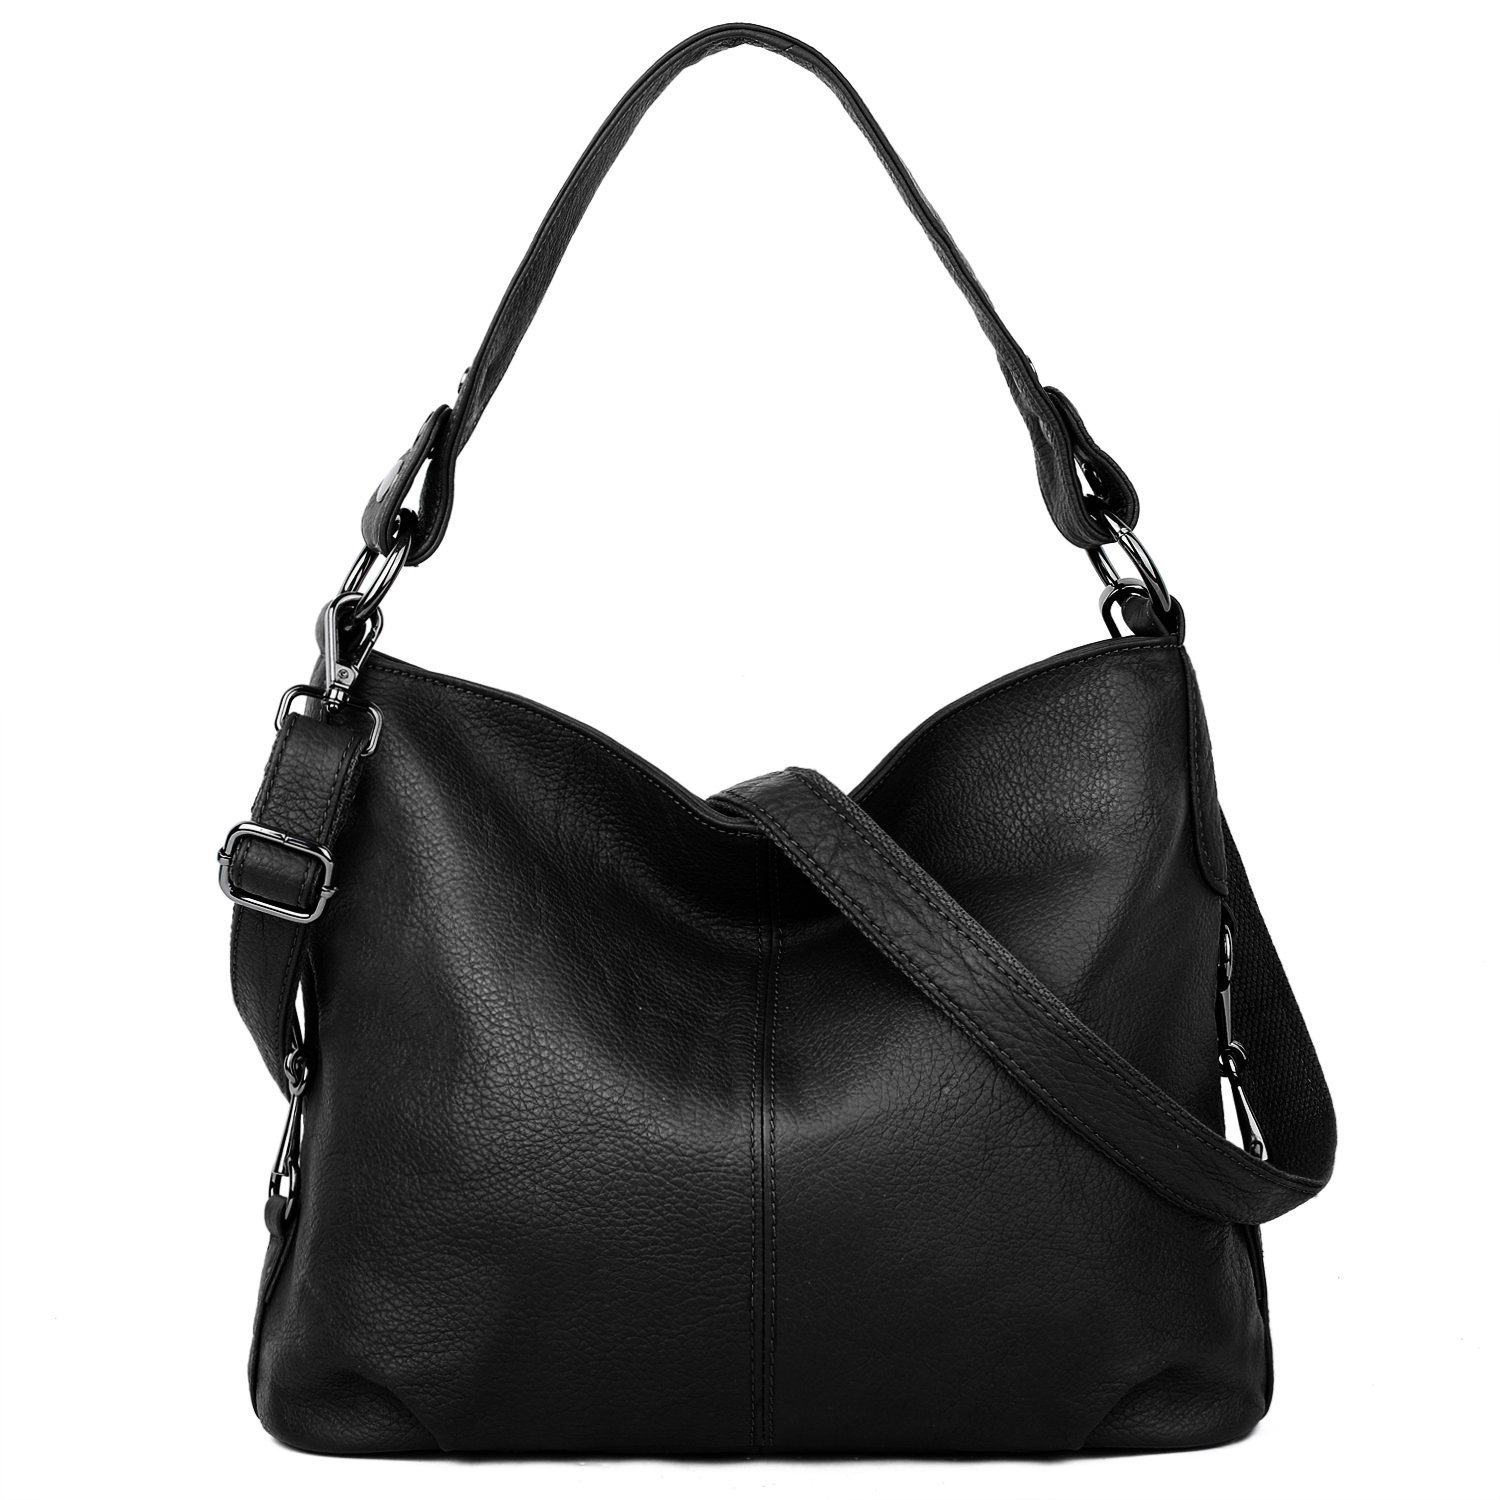 Amazon.com  YALUXE Women s Stylish Genuine Leather Tote Travel Shoulder Bag  Handle bag Bags for Women black  Shoes 29f72e1d1a72f